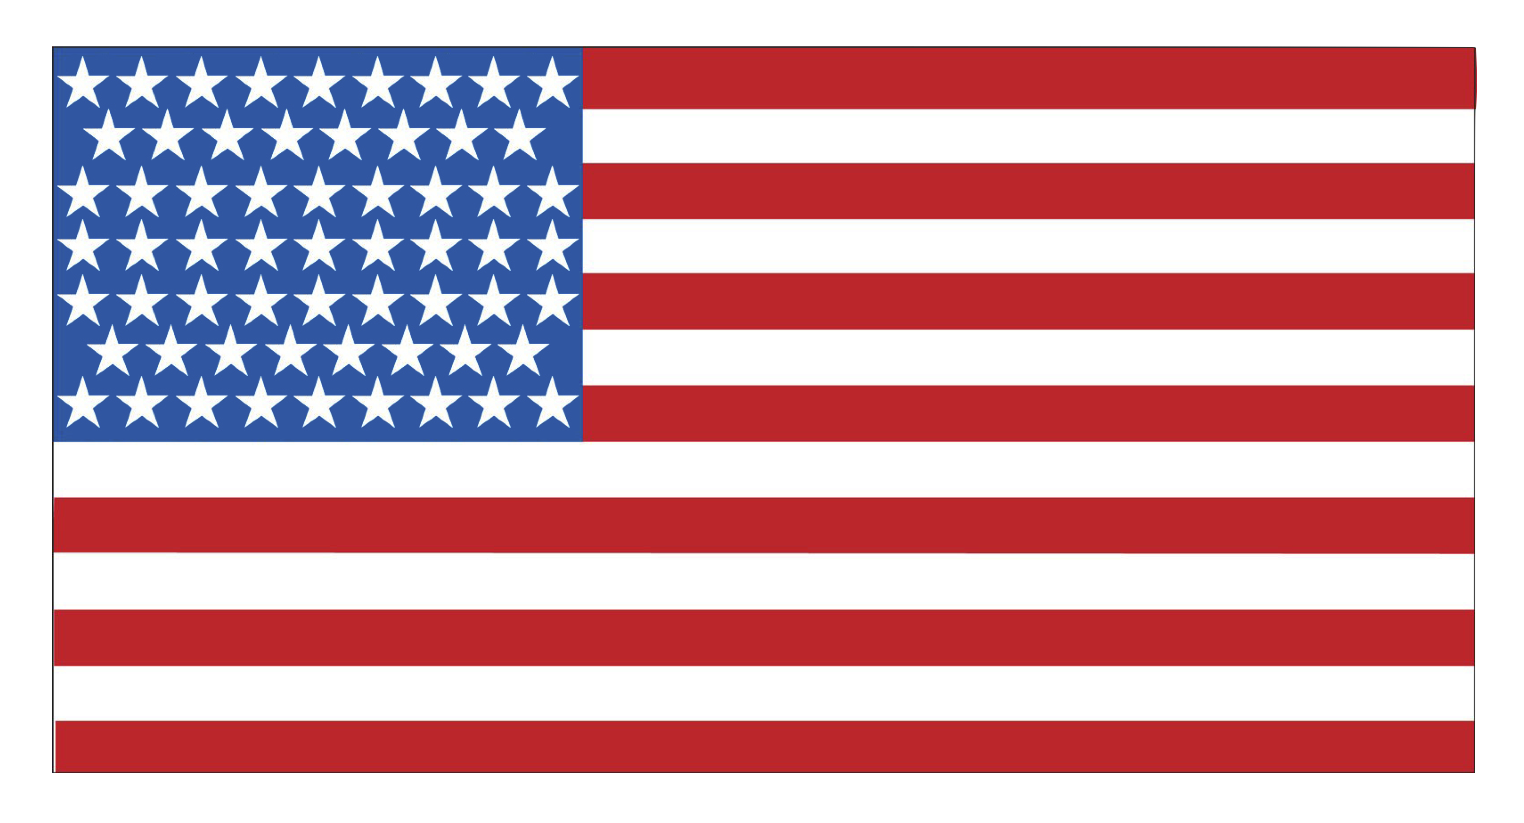 ced460b0778033e5c7106a4a8415862c_images-for-usa-flag-clip-art-usa-flag-clipart-png_1524-823